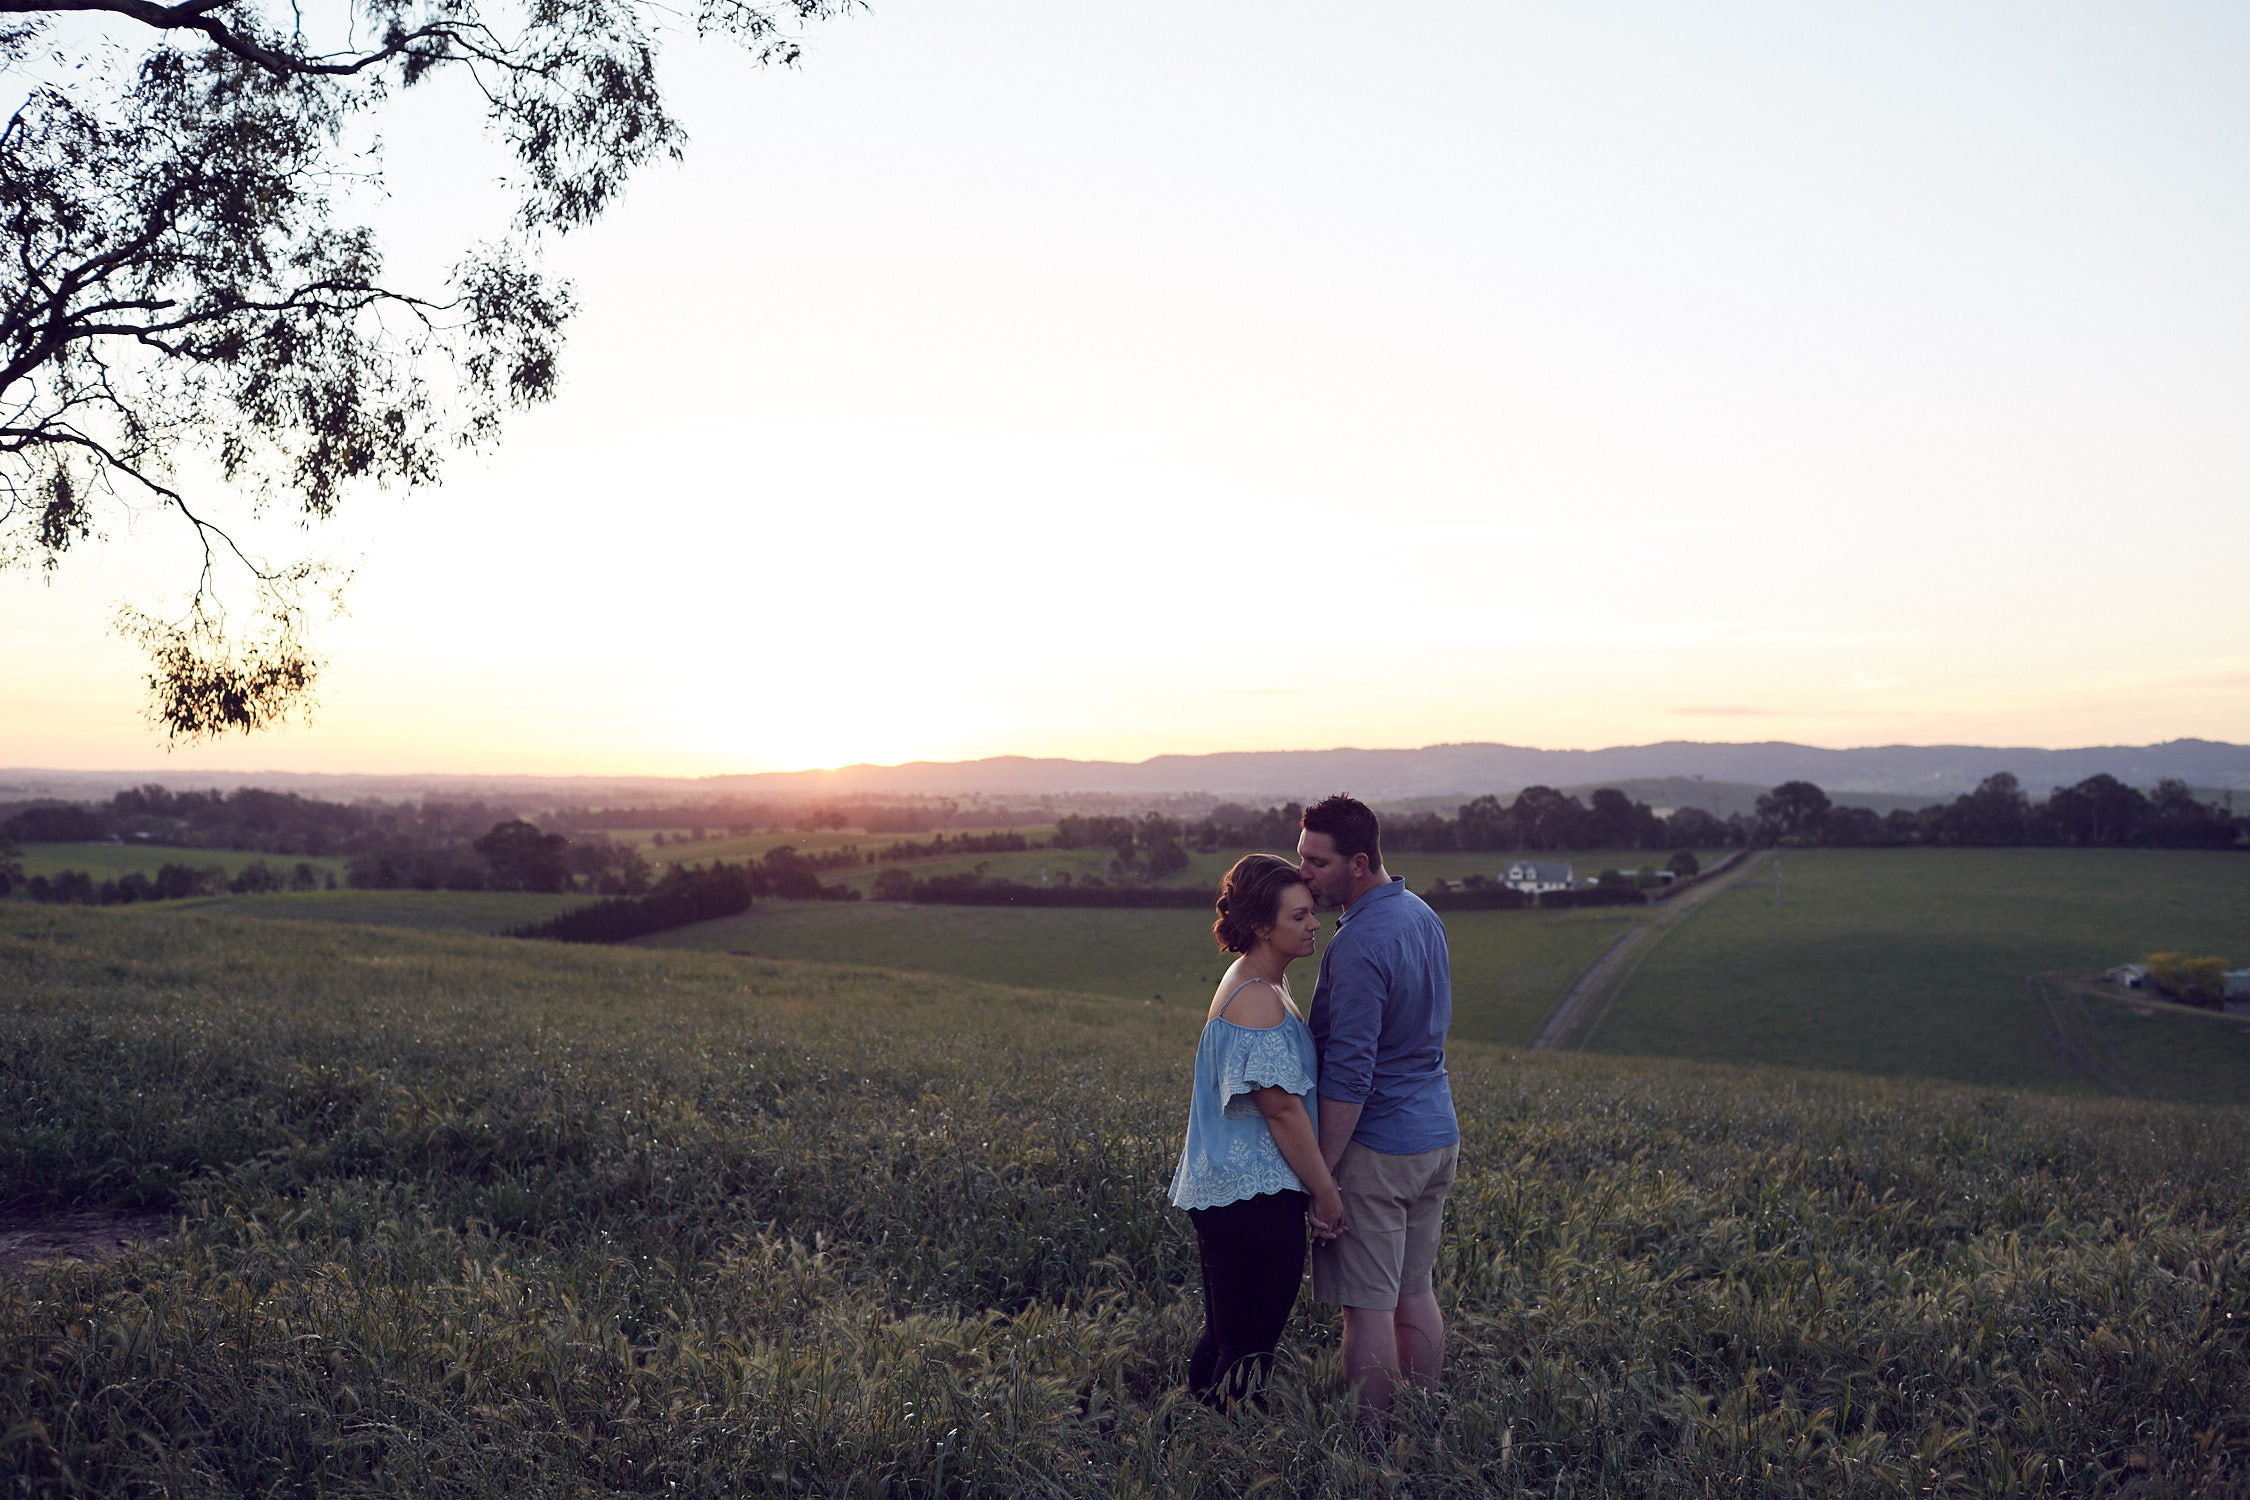 Annie + Andrew by Lost In Love Photography - #thelostinloveproject